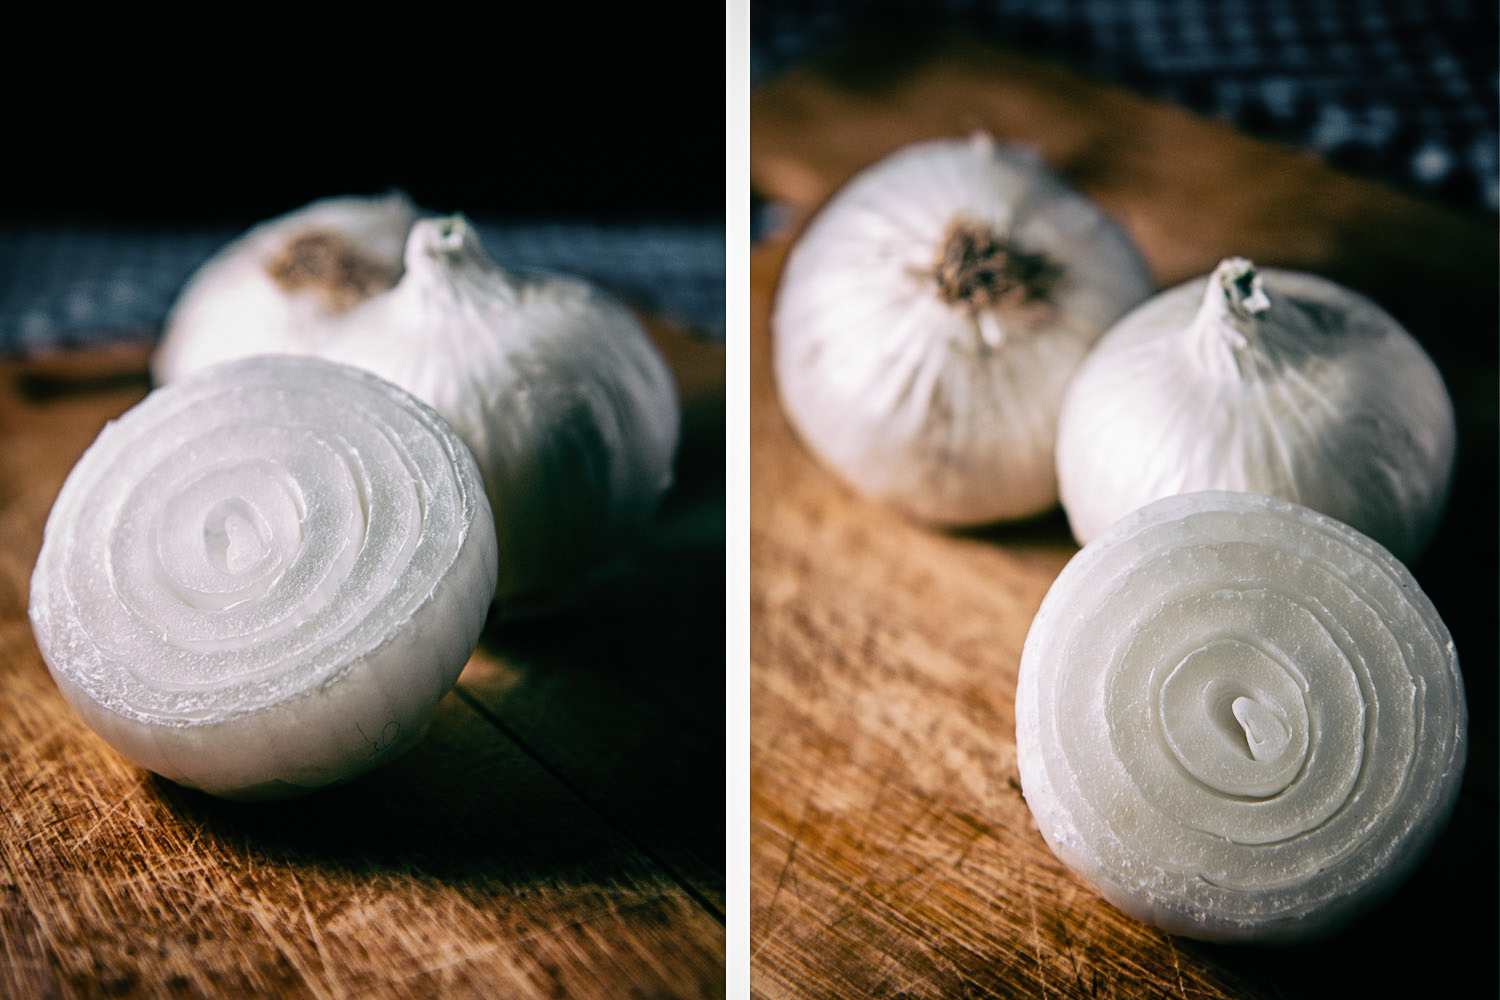 onions in different perspectives